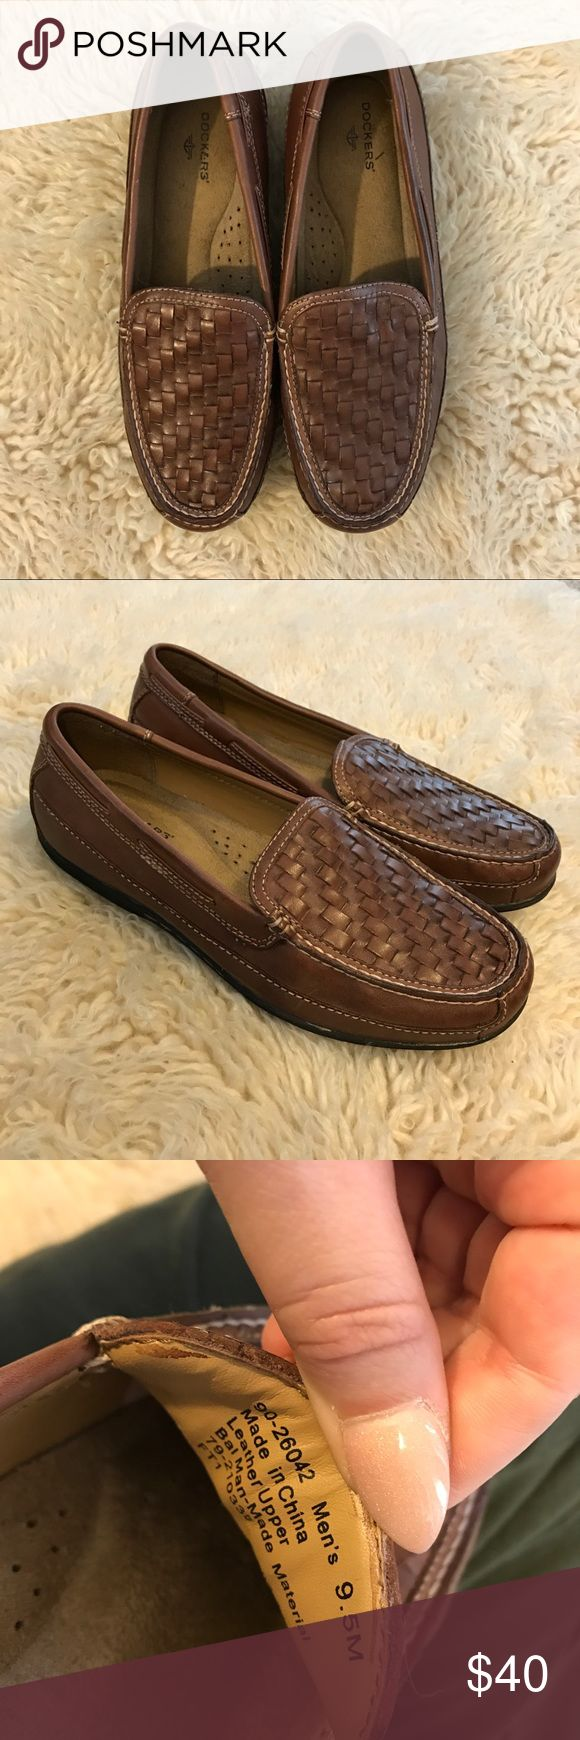 Men's Dockers Ferndale Loafer Complement your classic wardrobe with the stylish and comfortable Docker's Ferndale Loafer. Memory Foam insole Flexible construction Fit: True to Size Insole: Memory Foam Outsole: Rubber Upper: Leather Worn once in excellent condition Dockers Shoes Loafers & Slip-Ons